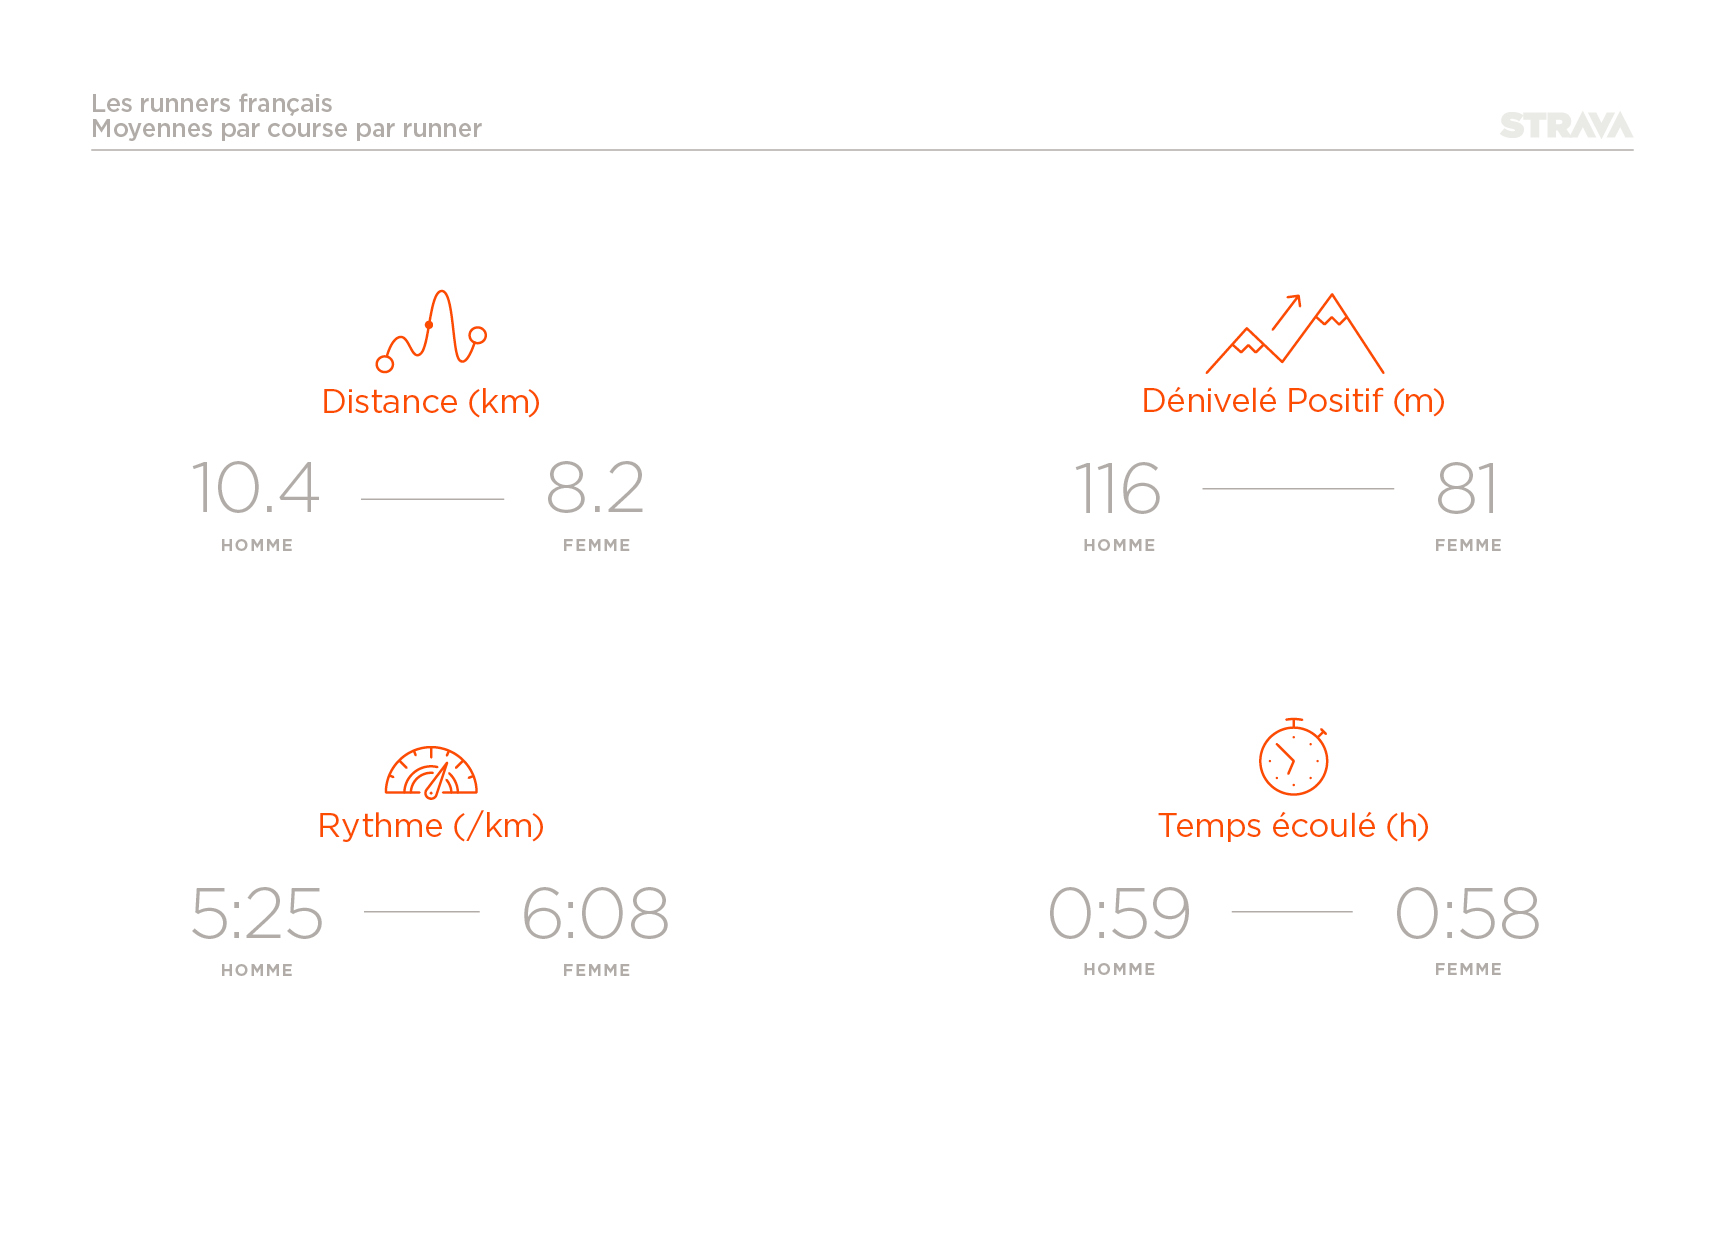 2015_course-pied-runners-homme-femme-strava-EOY_Press_Assets_France24